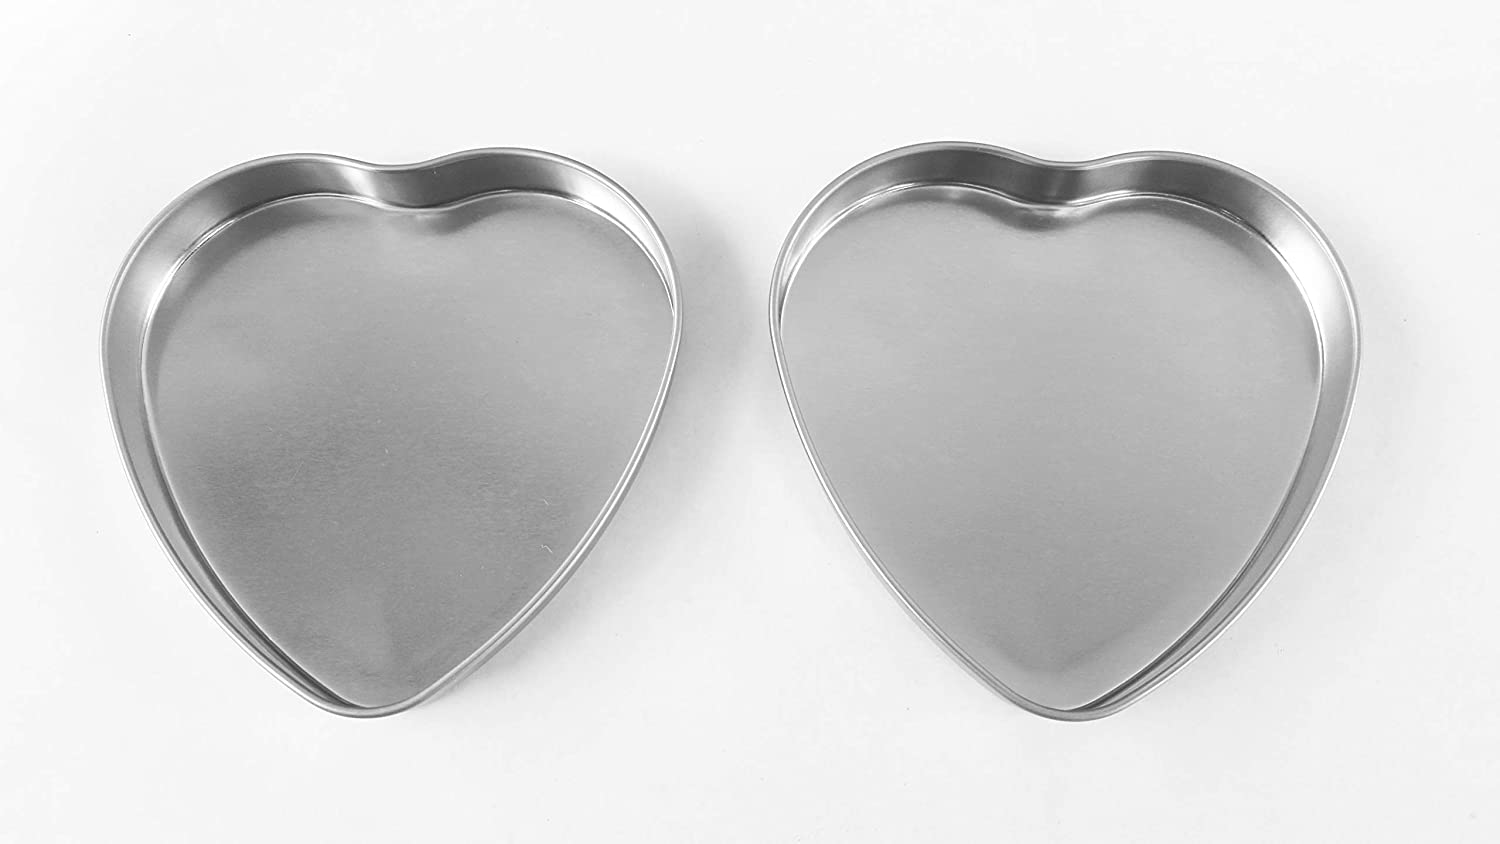 Quadrapoint Easy Bake Oven Heart Pans